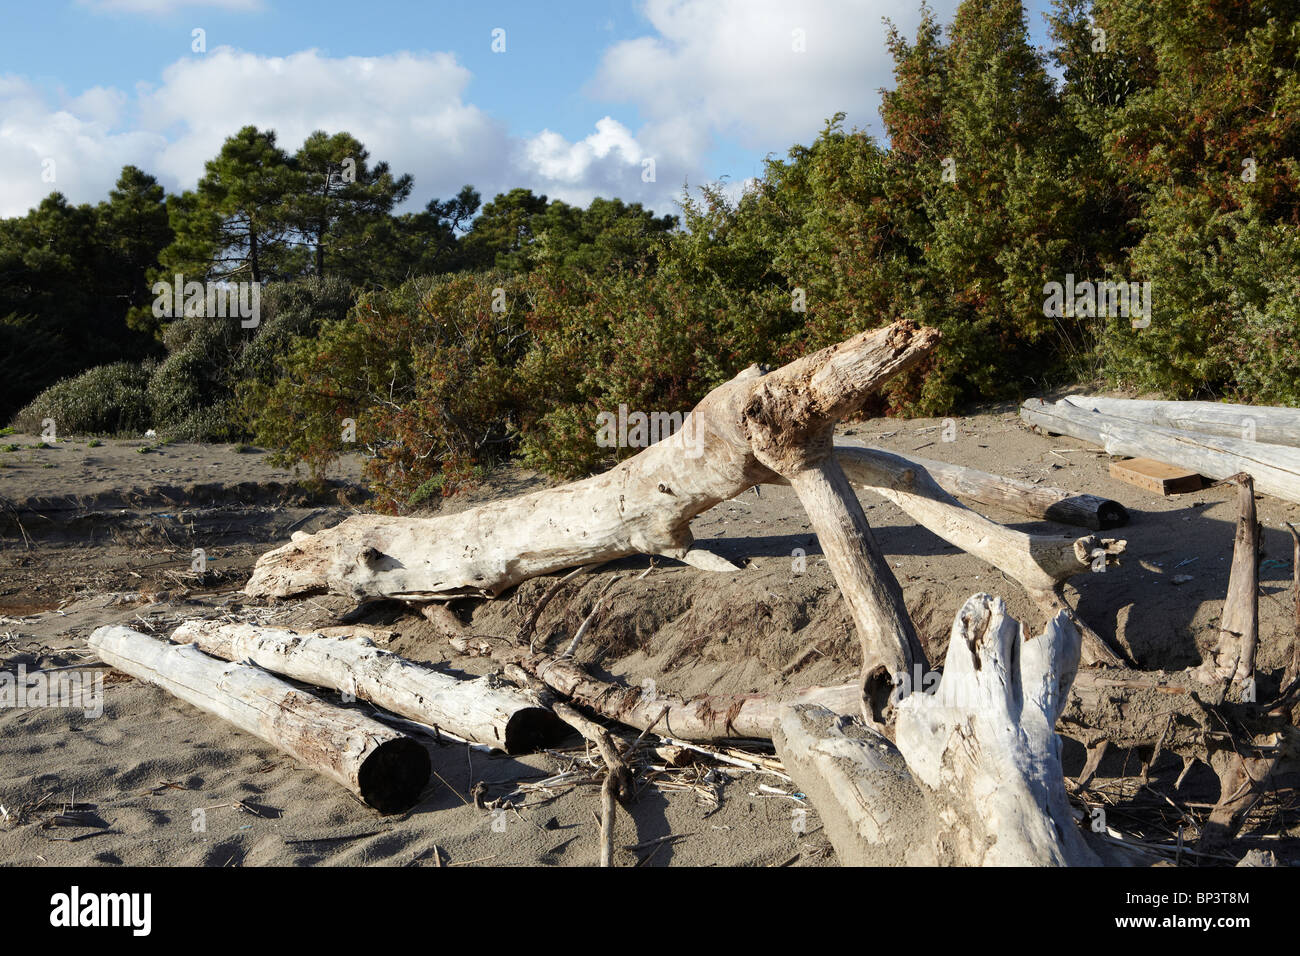 Driftwood on a beach in Follonica, Italy - Stock Image